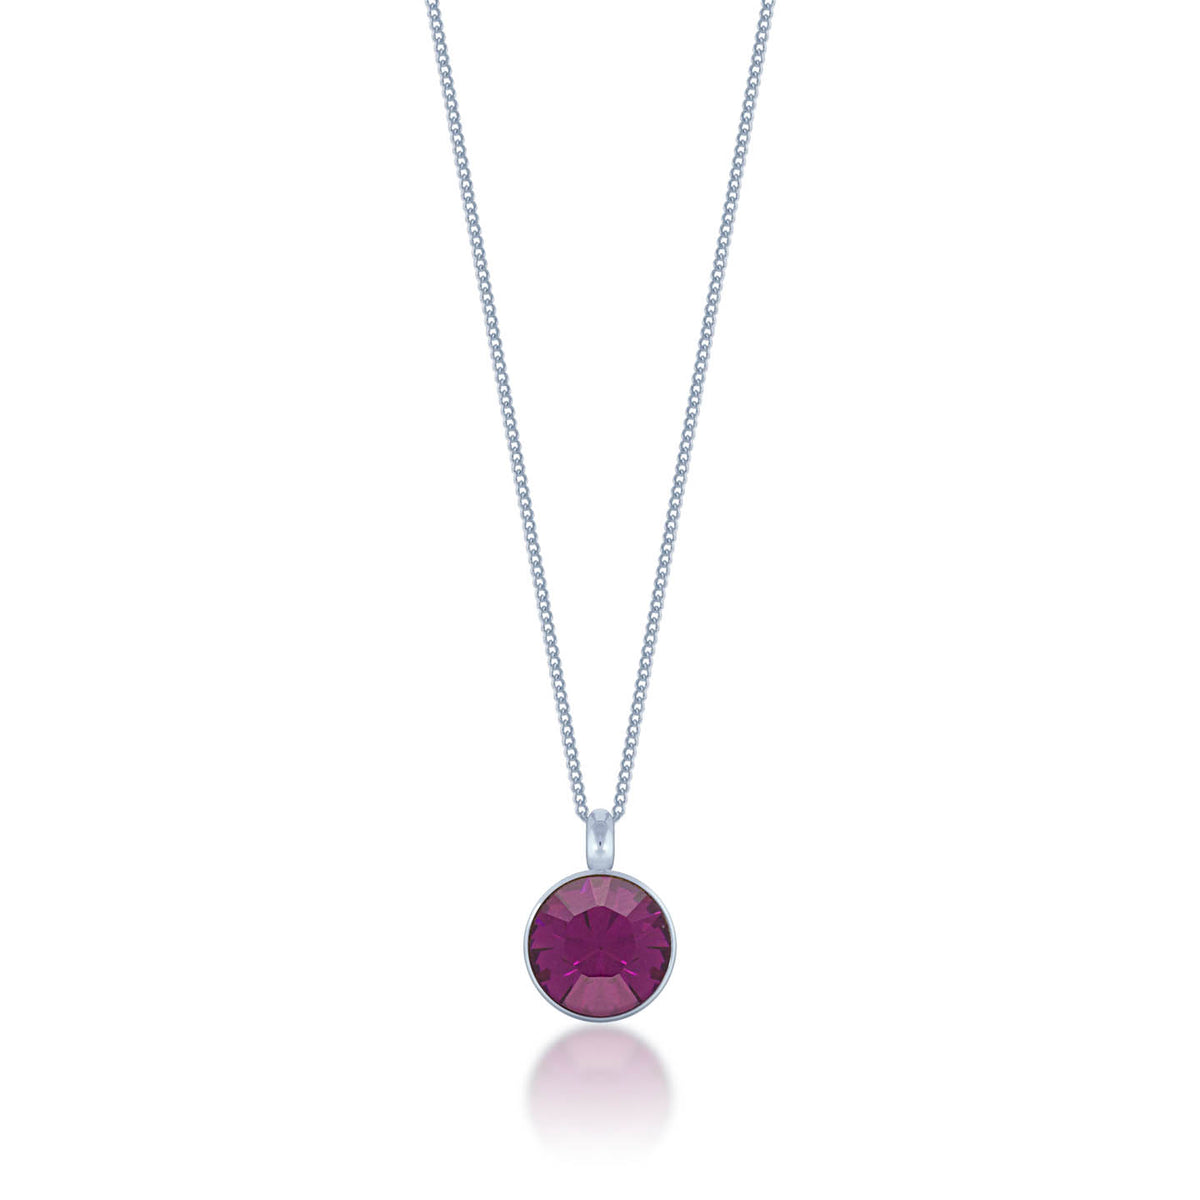 Bella Pendant Necklace with Purple Amethyst Round Crystals from Swarovski Silver Toned Rhodium Plated - Ed Heart